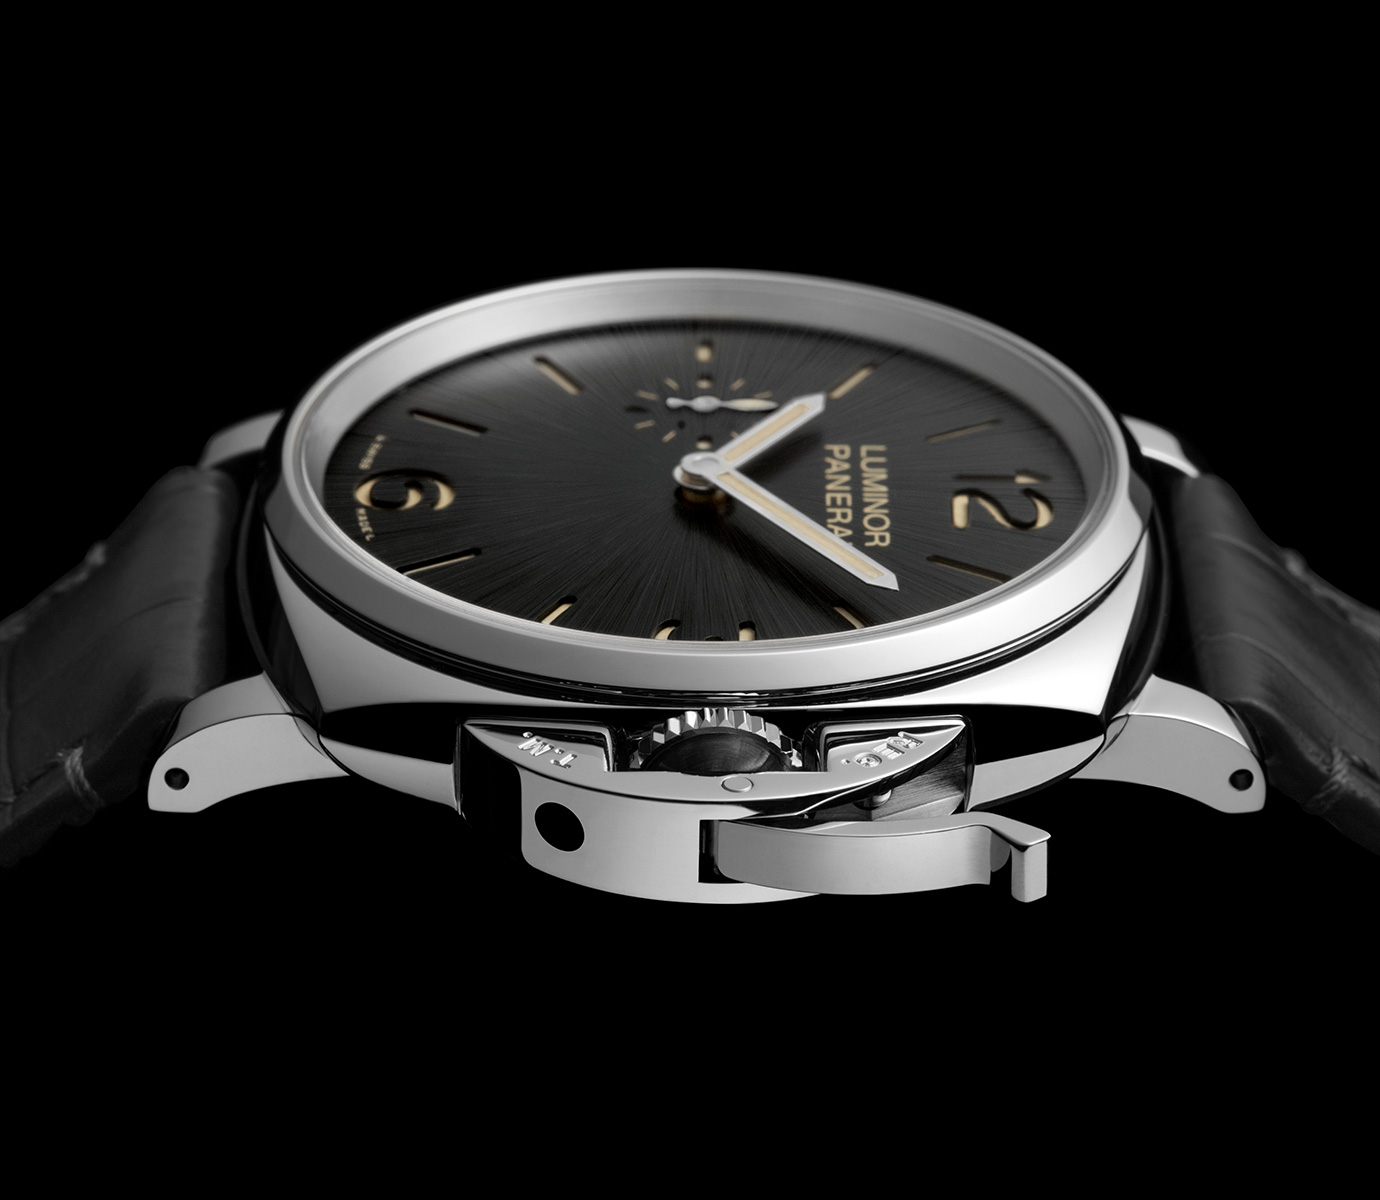 Panerai-Luminor-Due-3-Days-Acciaio-42-mm-3-Horasyminutos